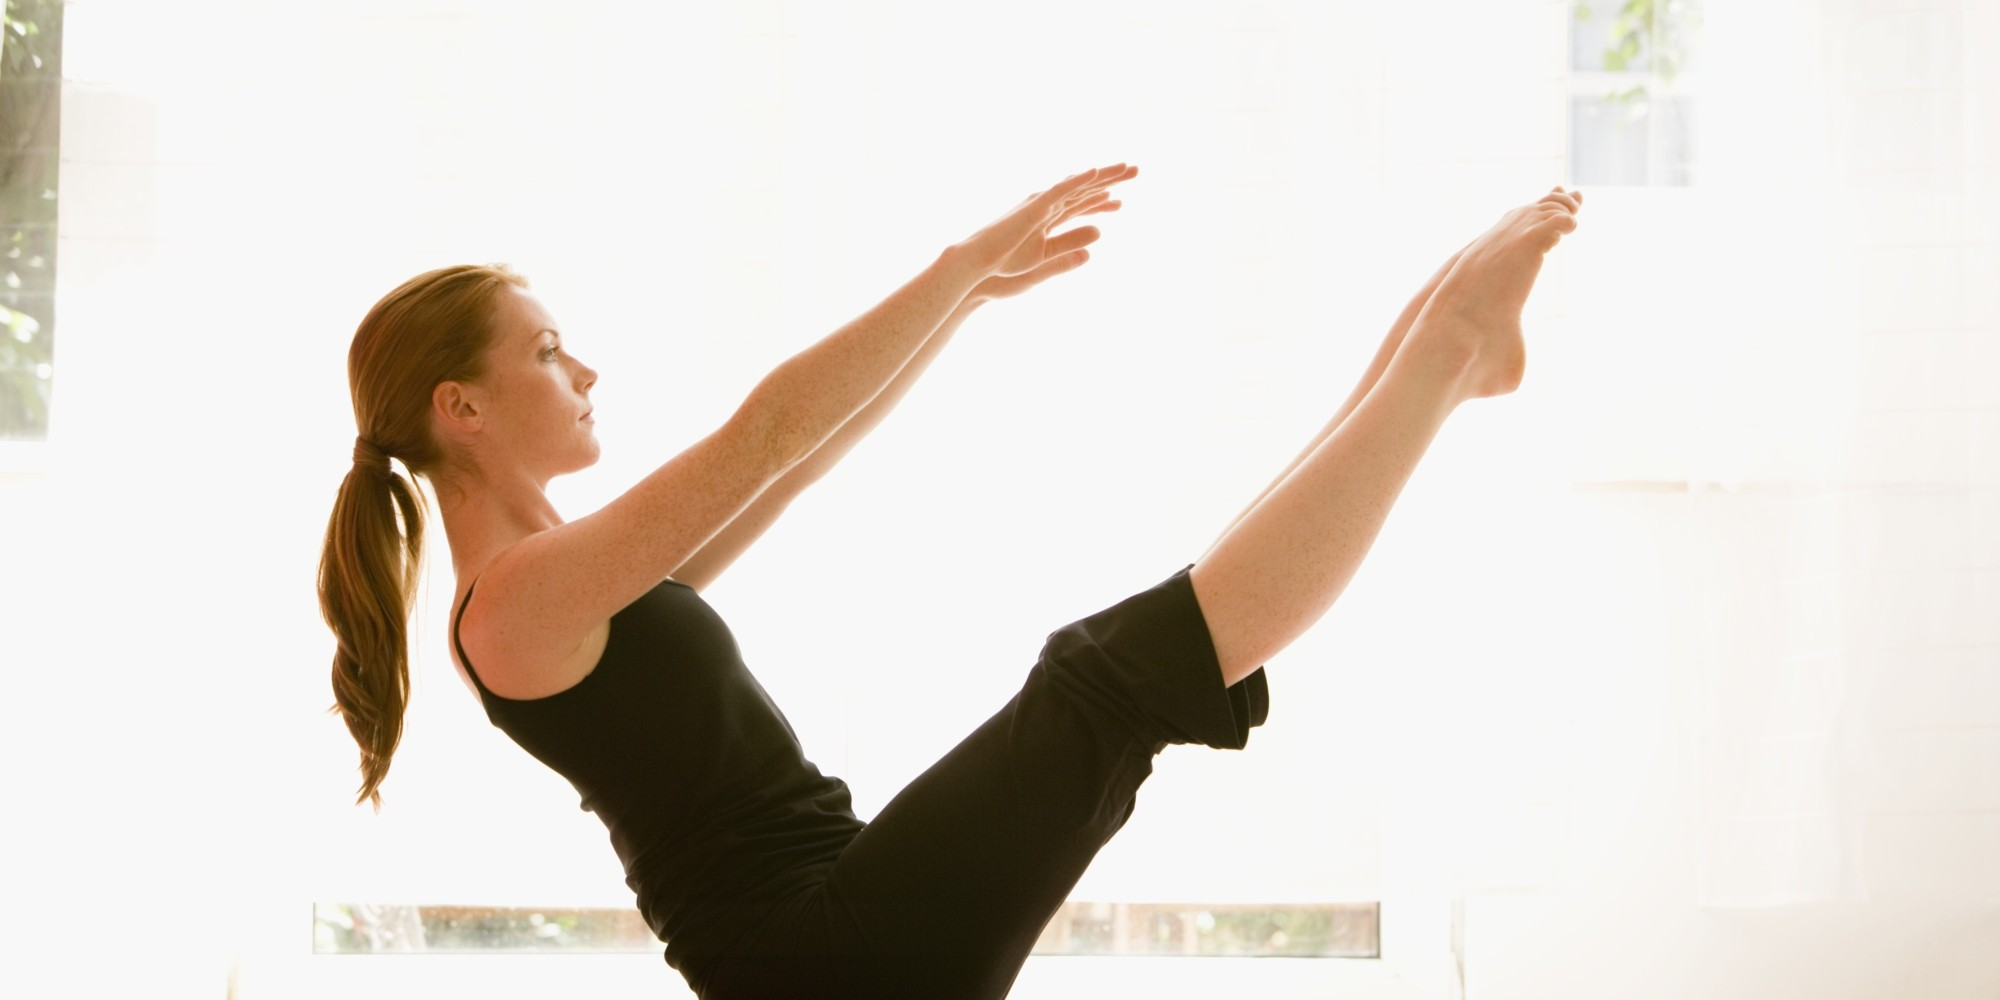 Pilates Exercises For Beginners To Try At Home, Including Pelvic Tilts ...